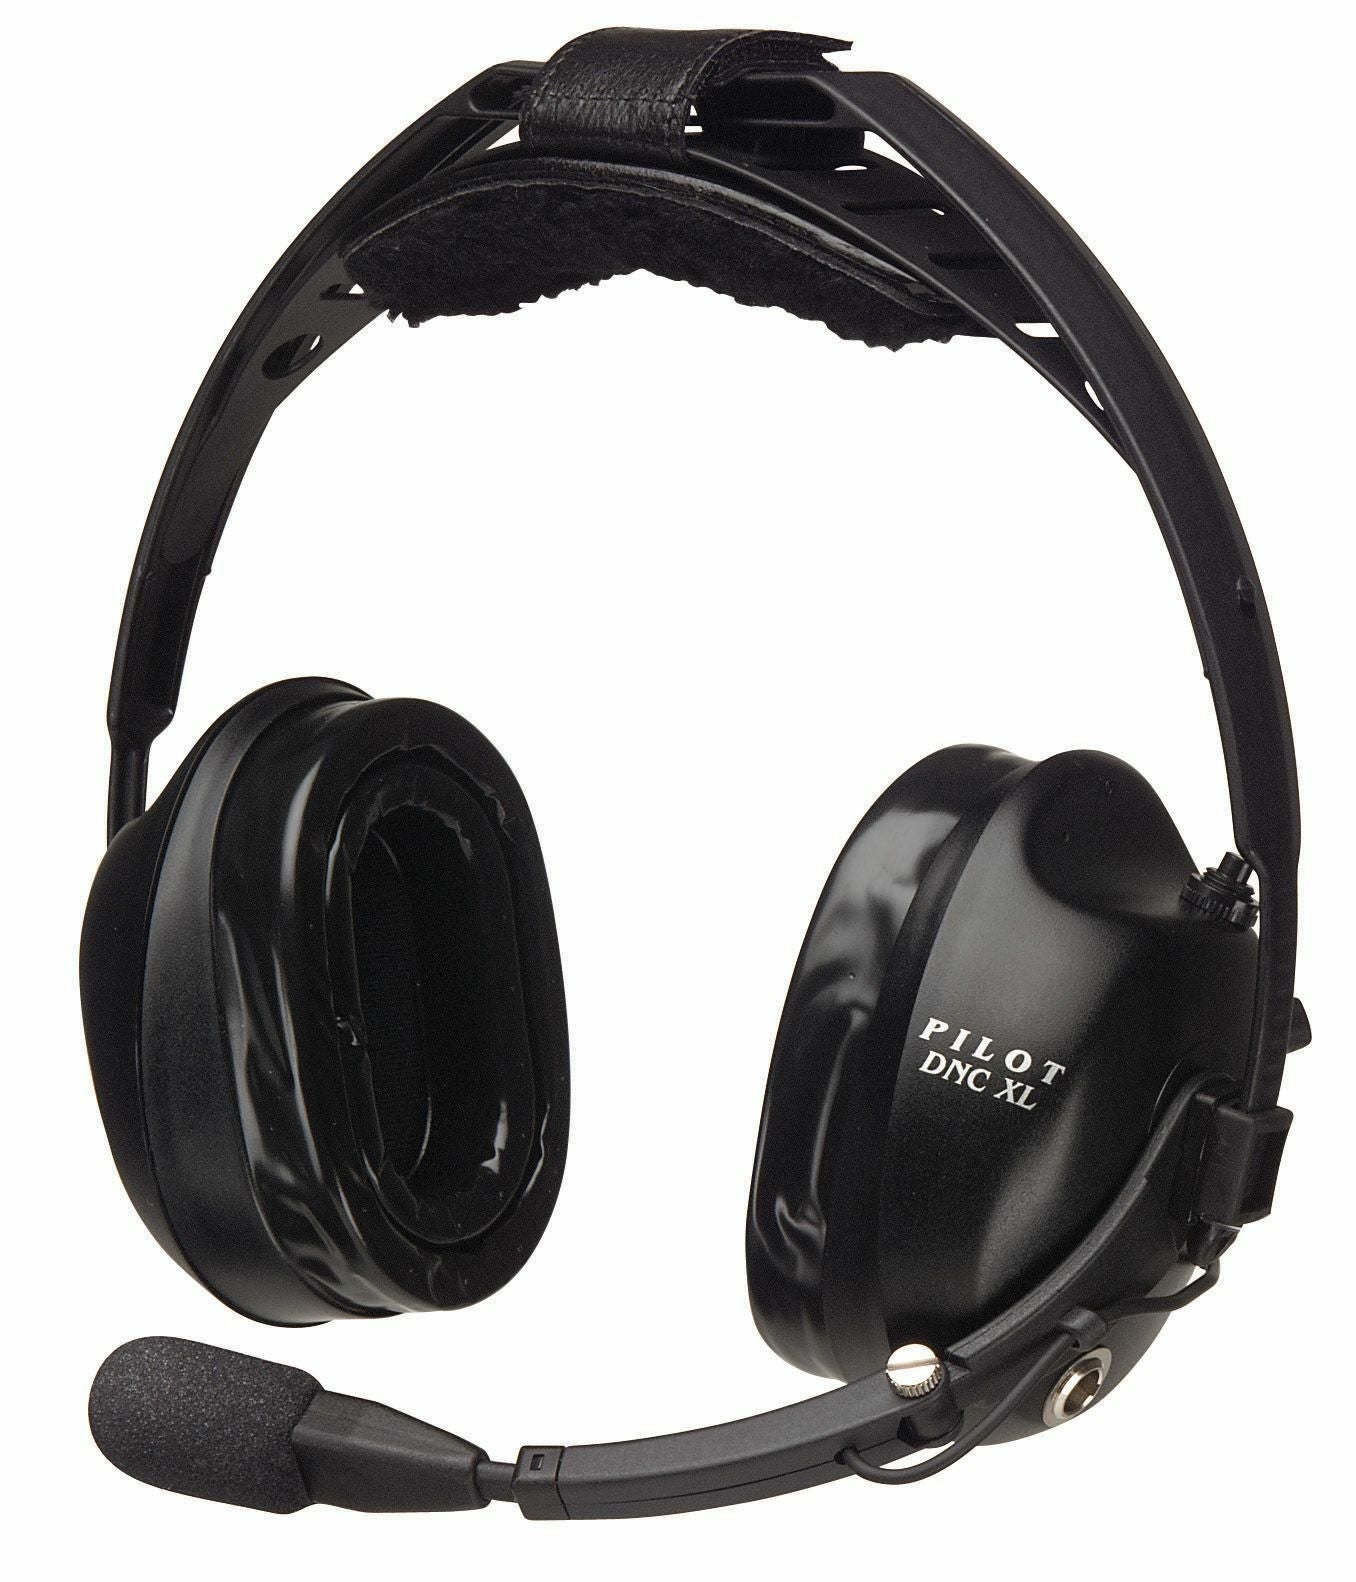 New Pilot PA-1779TH Aviation ANR Cell/Satellite Heli Headset